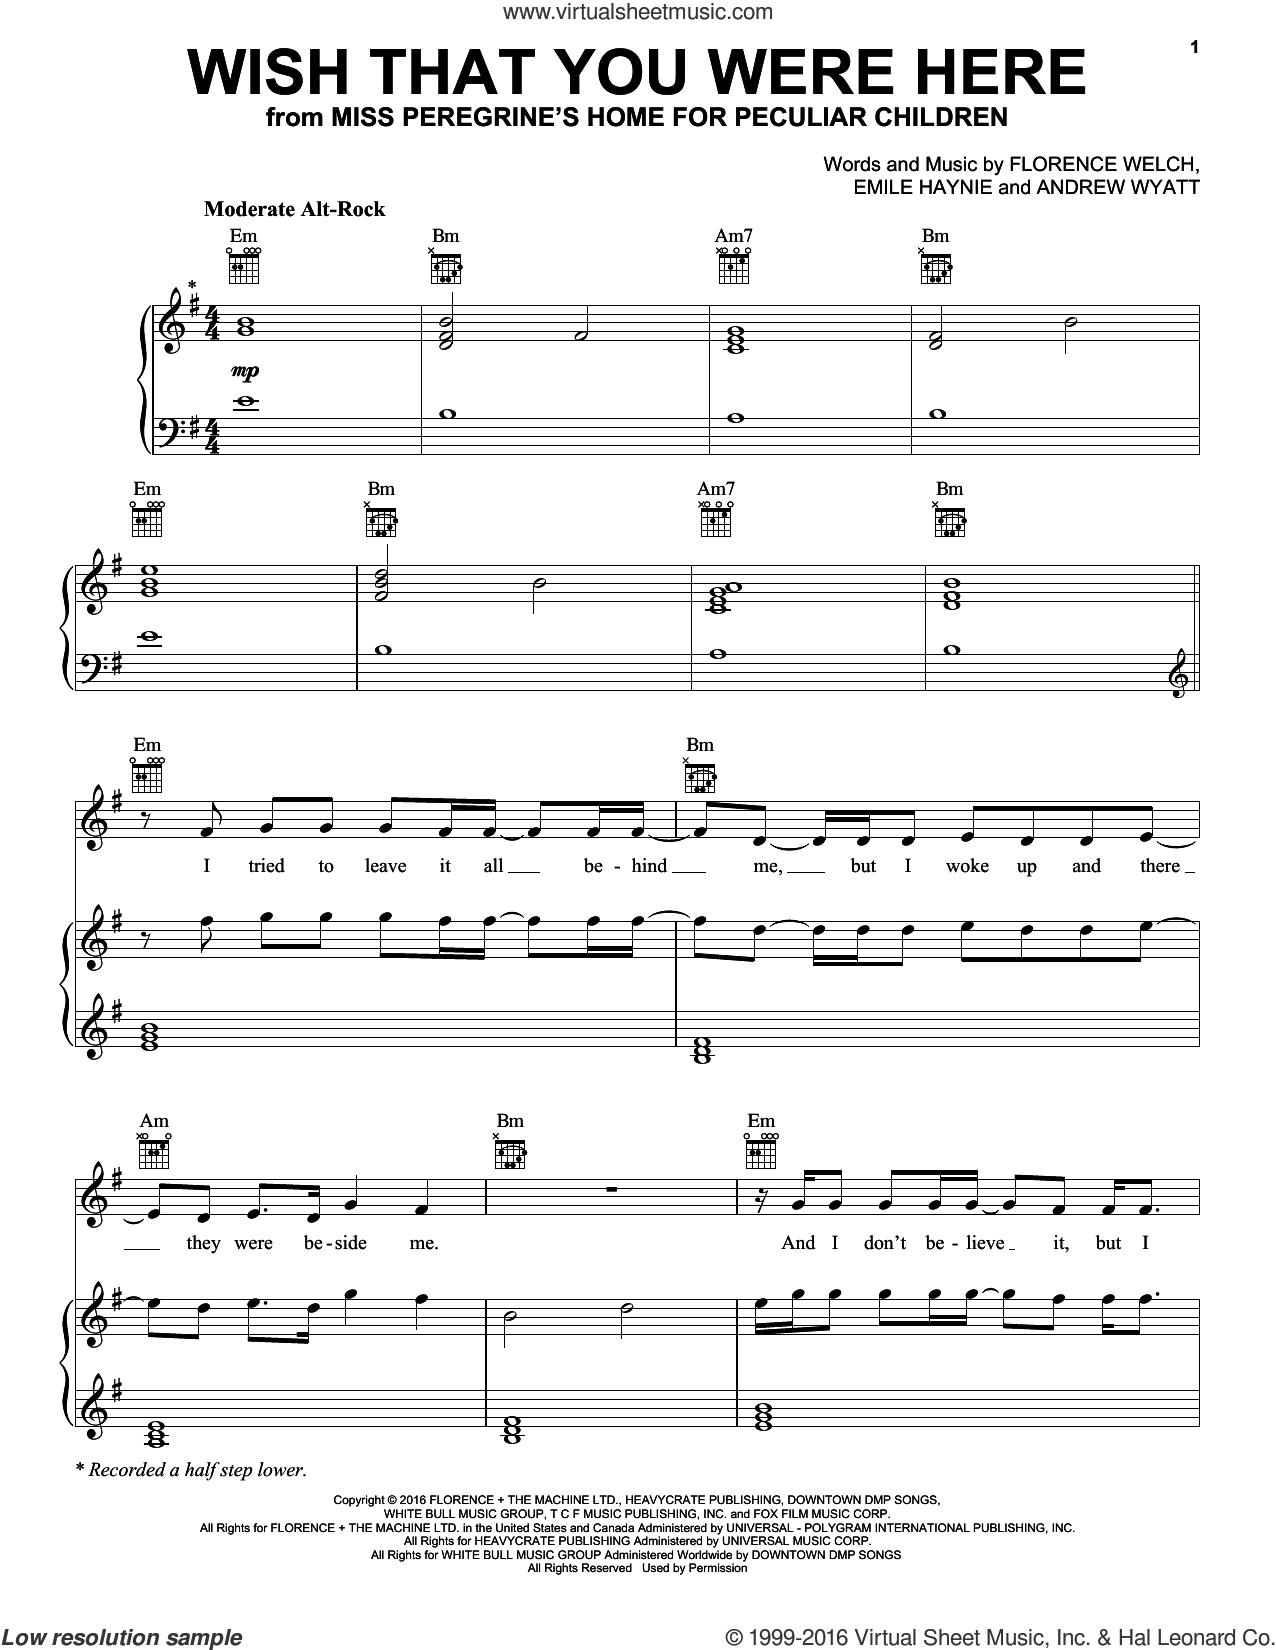 Wish That You Were Here sheet music for voice, piano or guitar by Florence And The Machine, Andrew Wyatt, Emile Haynie and Florence Welch, intermediate skill level